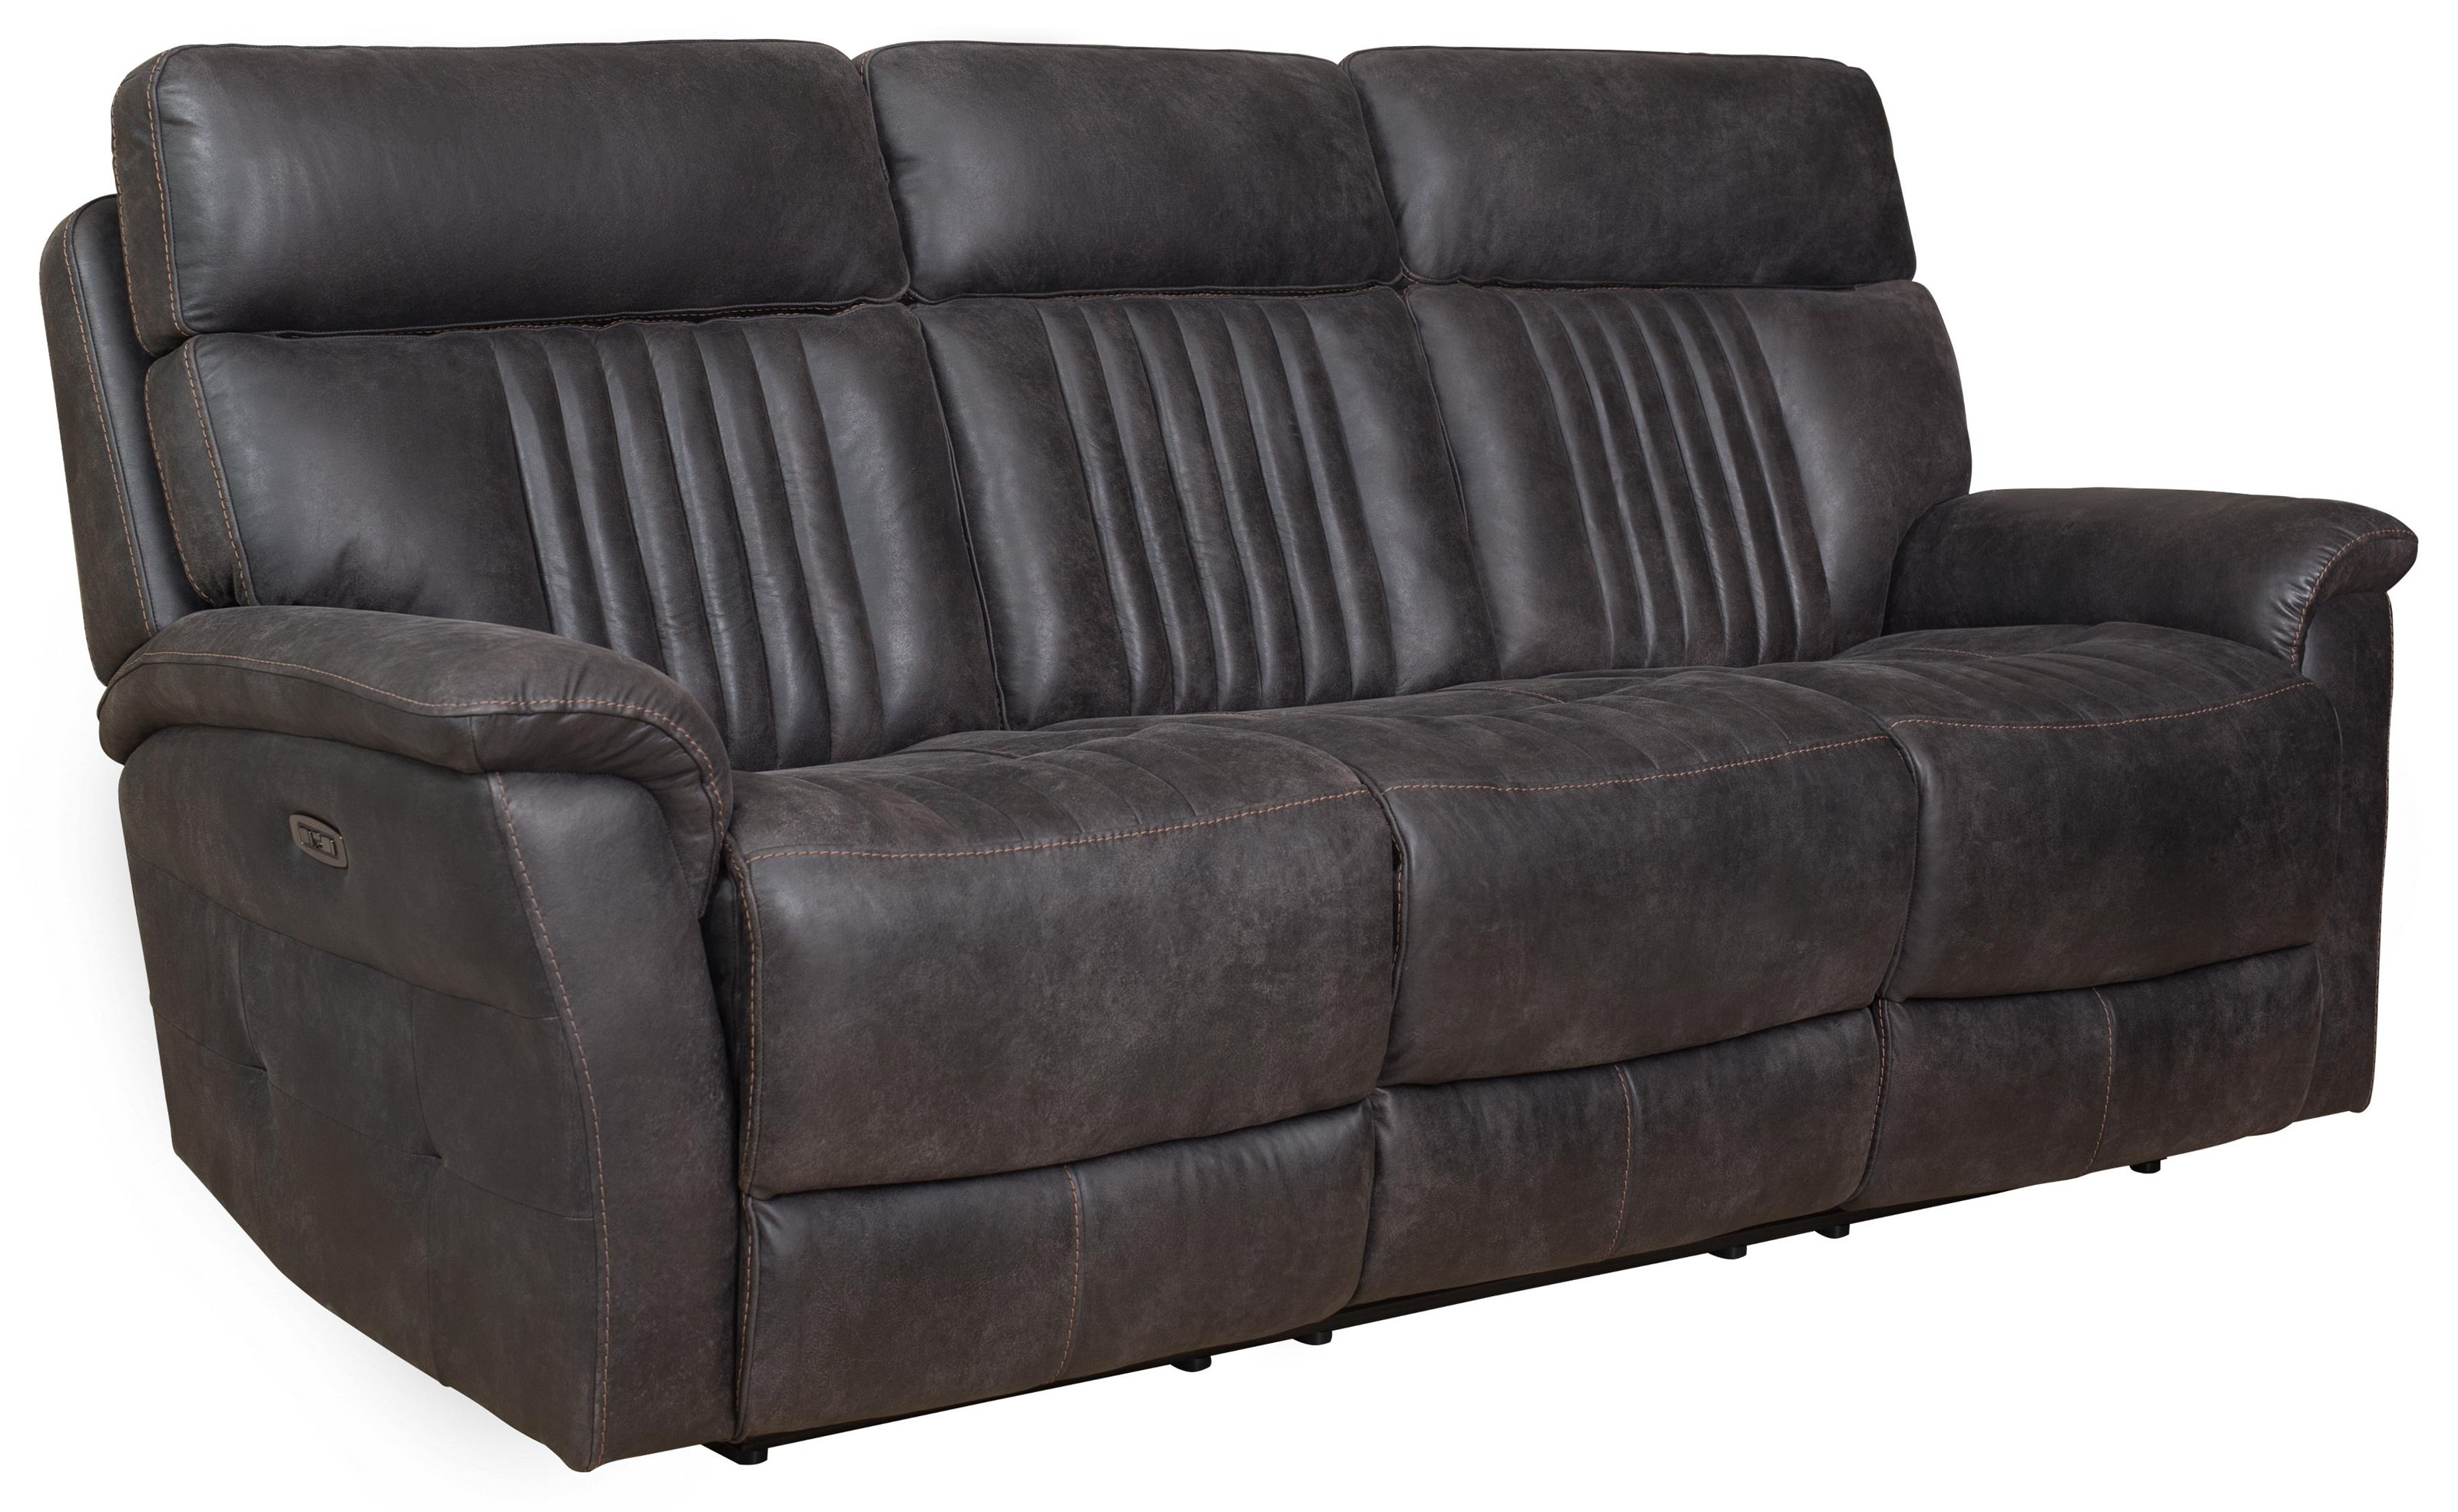 Shae Shae Power Sofa with Drop Down Table by Prime Resources International at Morris Home